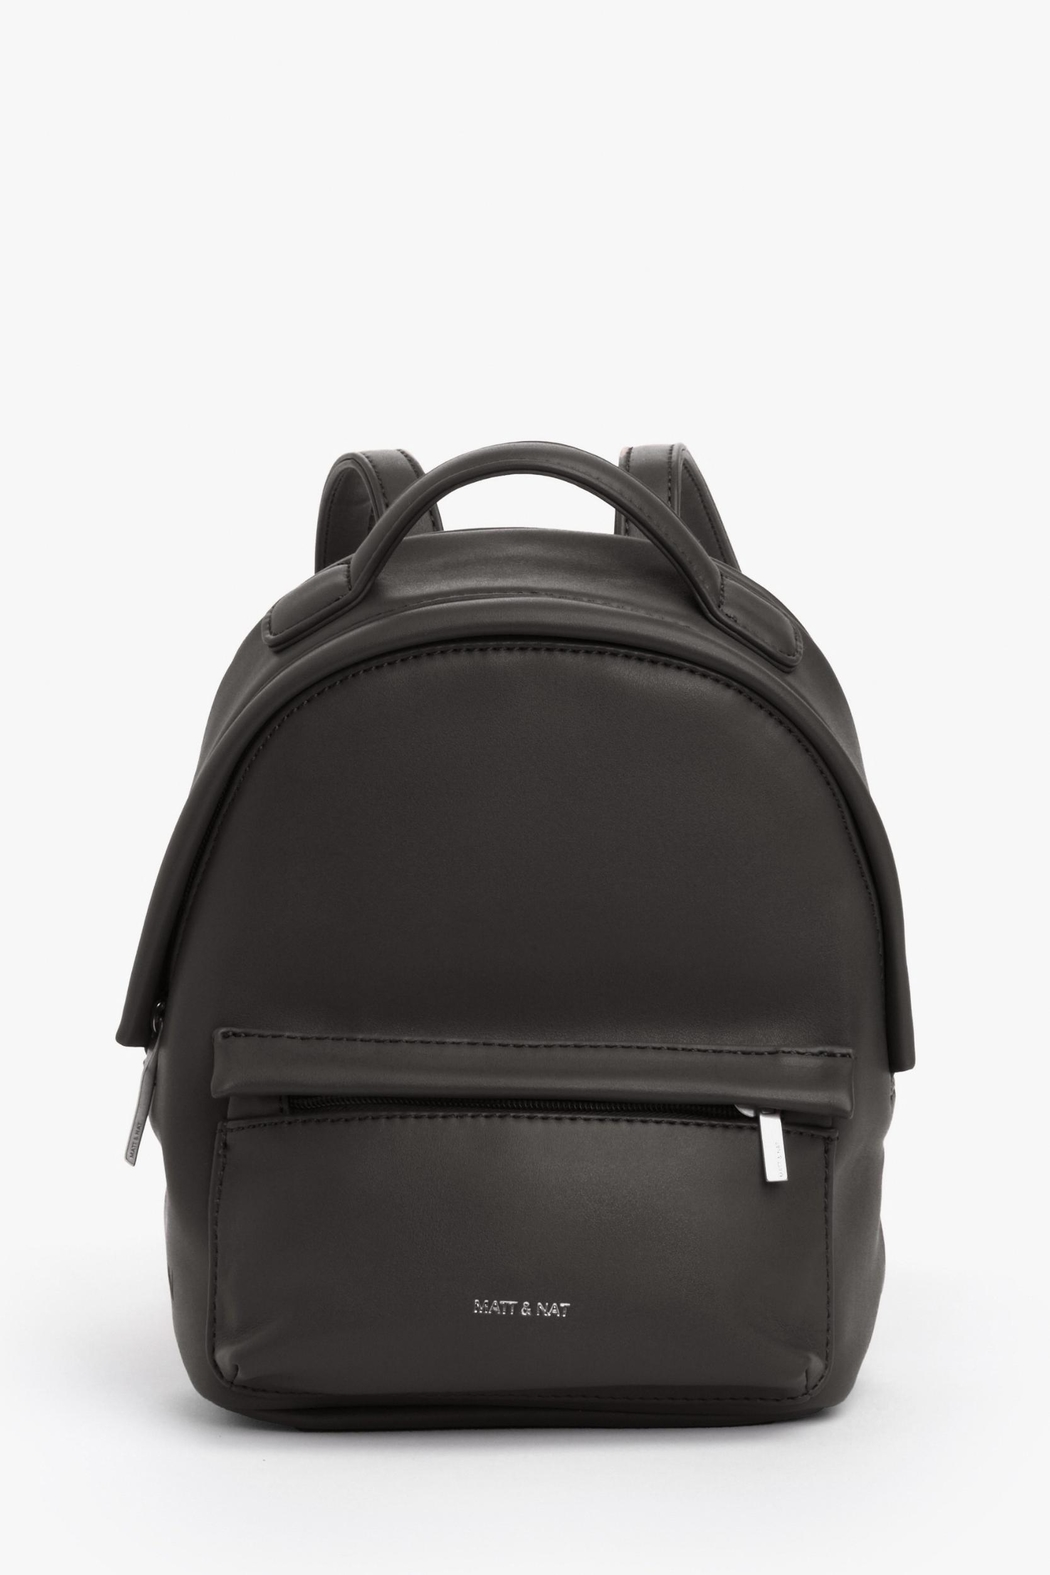 Matt /& Nat Munich Loom Backpack Blossom